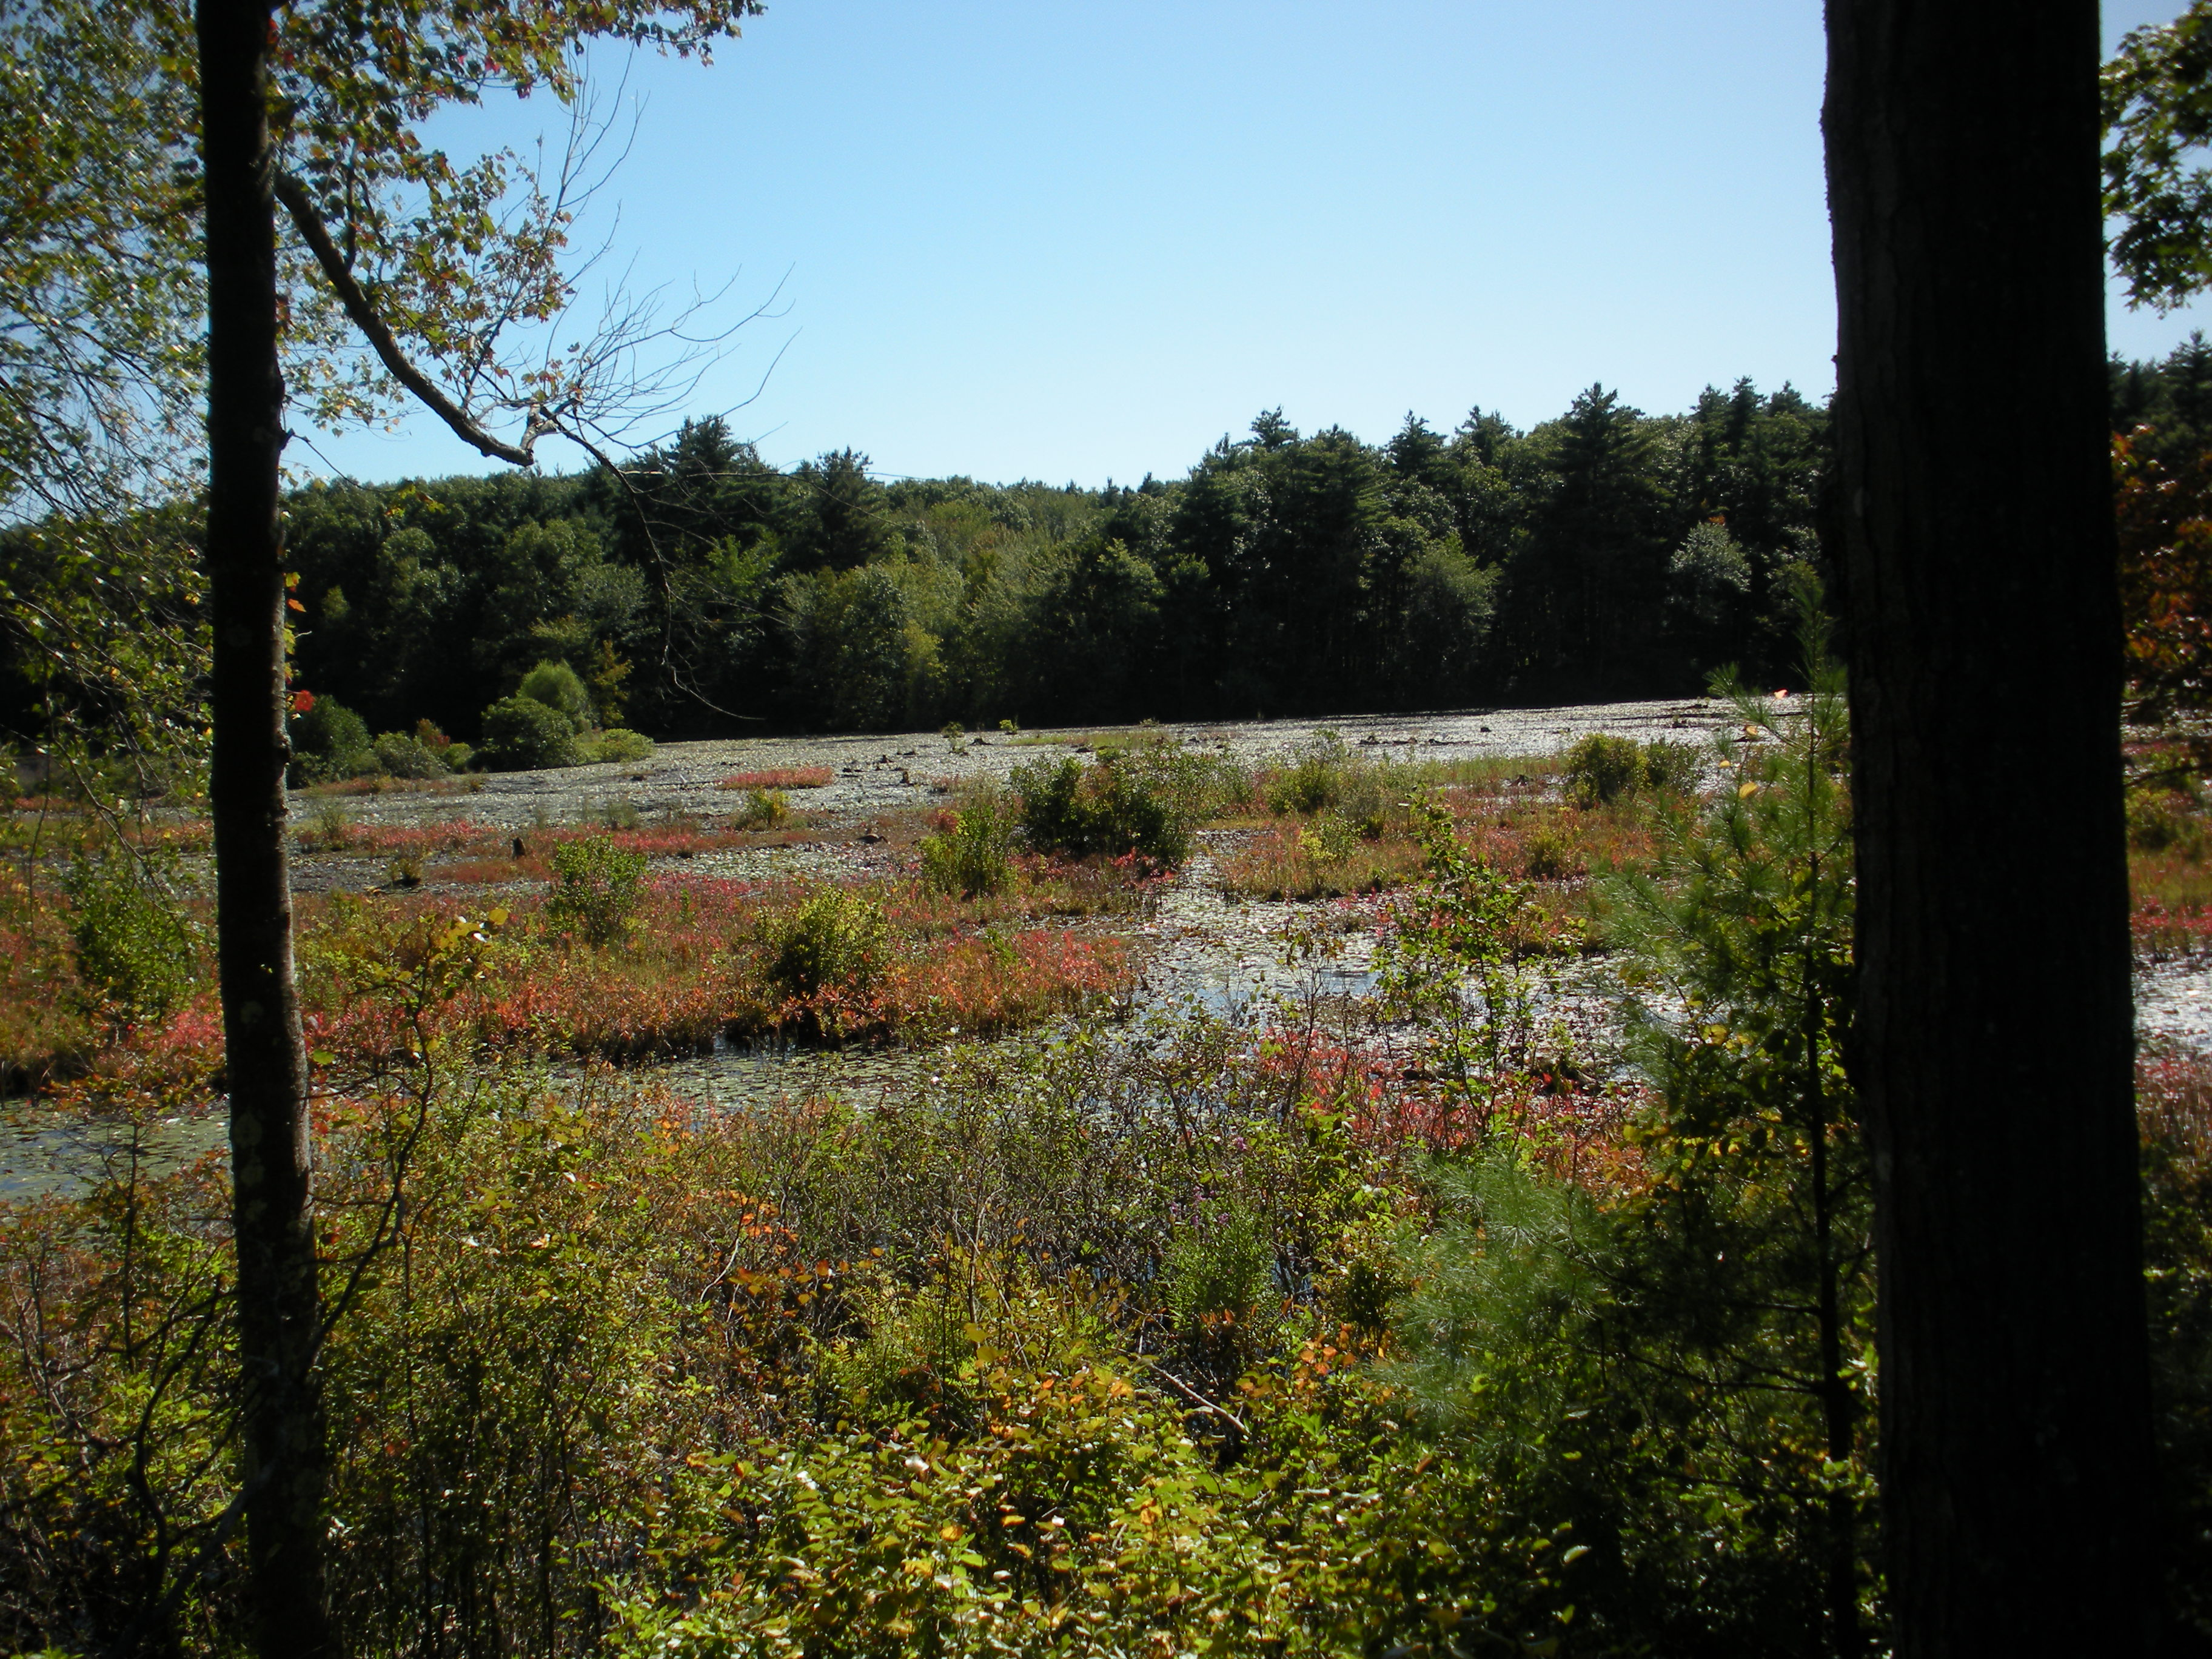 This is the view from the nature trail behind the store